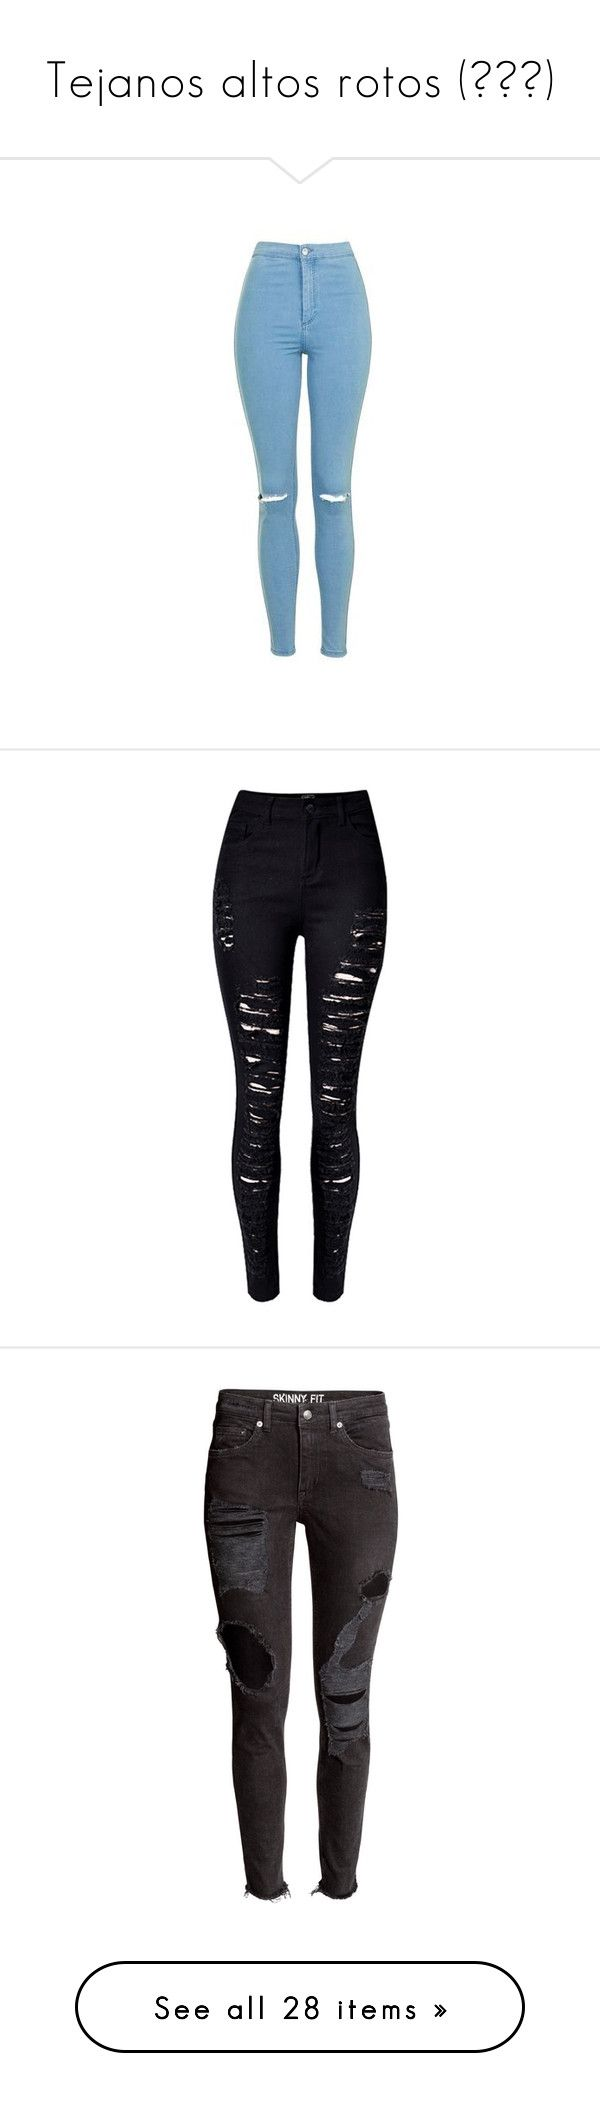 """""""Tejanos altos rotos (≧ω≦)"""" by secretgarden-93 ❤ liked on Polyvore featuring jeans, pants, bottoms, pantalones, trousers, bleach stone, torn skinny jeans, high waisted ripped skinny jeans, high-waisted jeans and stretchy skinny jeans"""